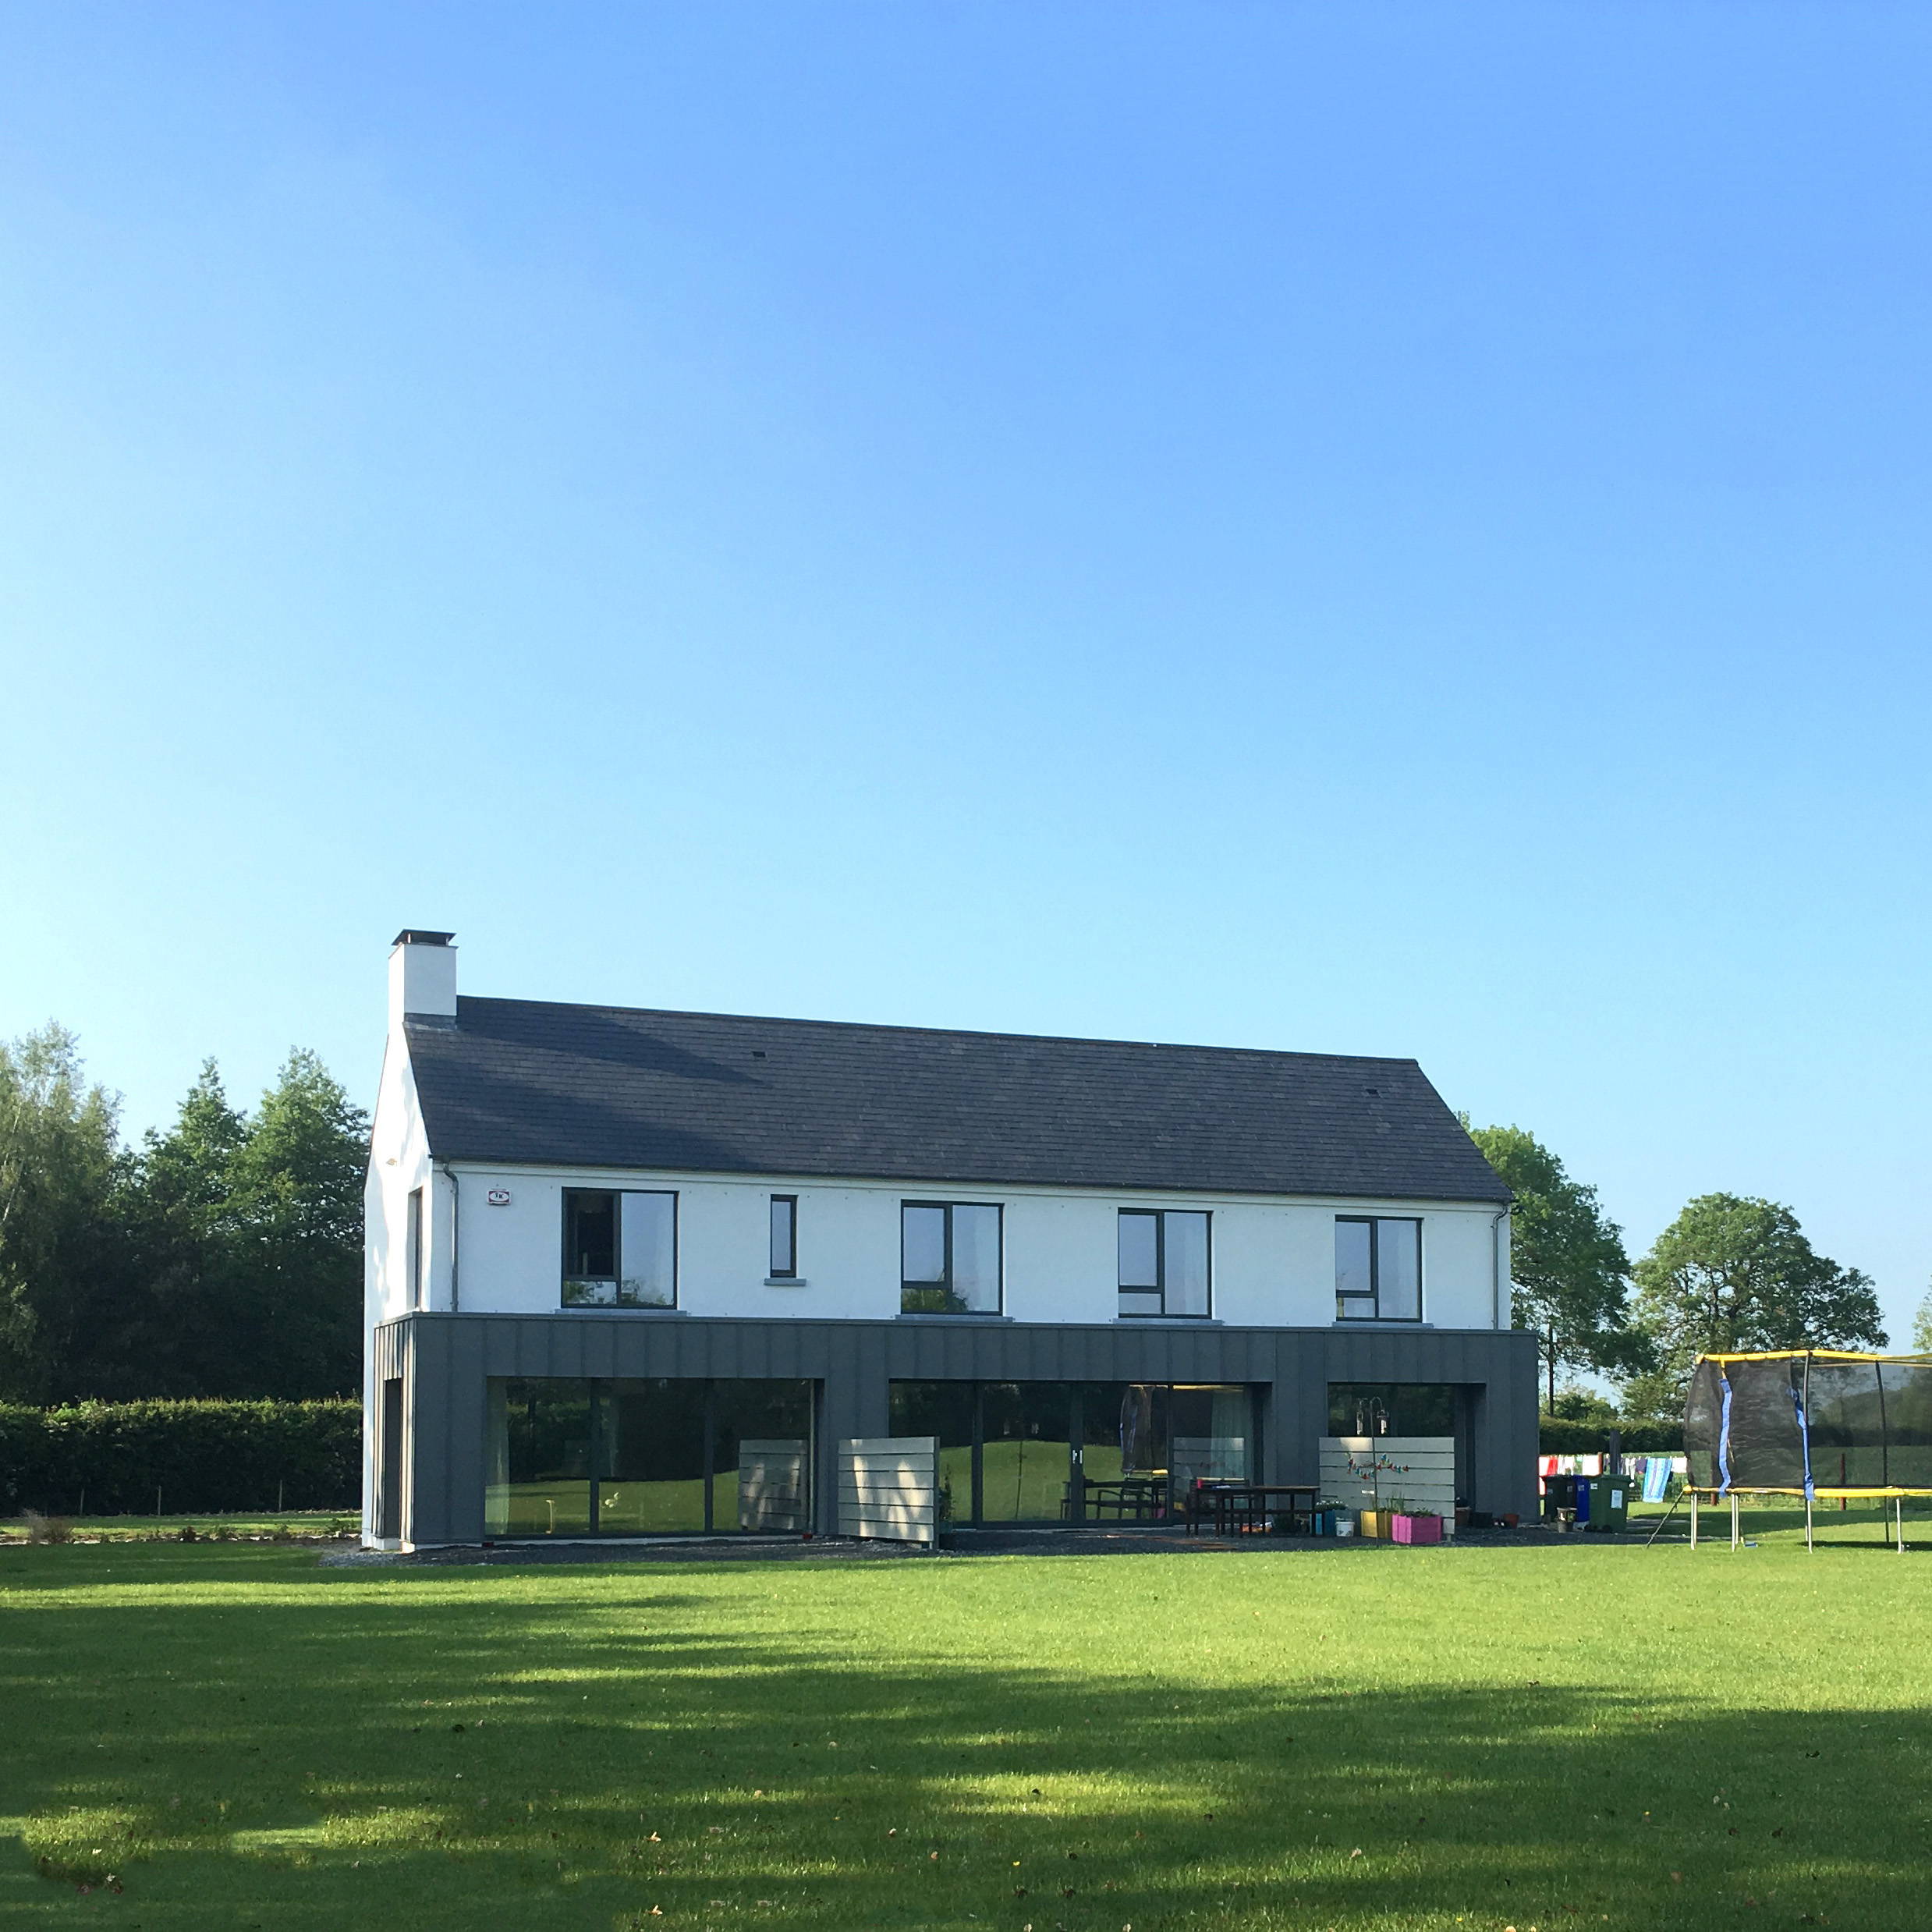 Maynooth House, Co. Kildare  Passive Performance House - A rated for energy efficiency